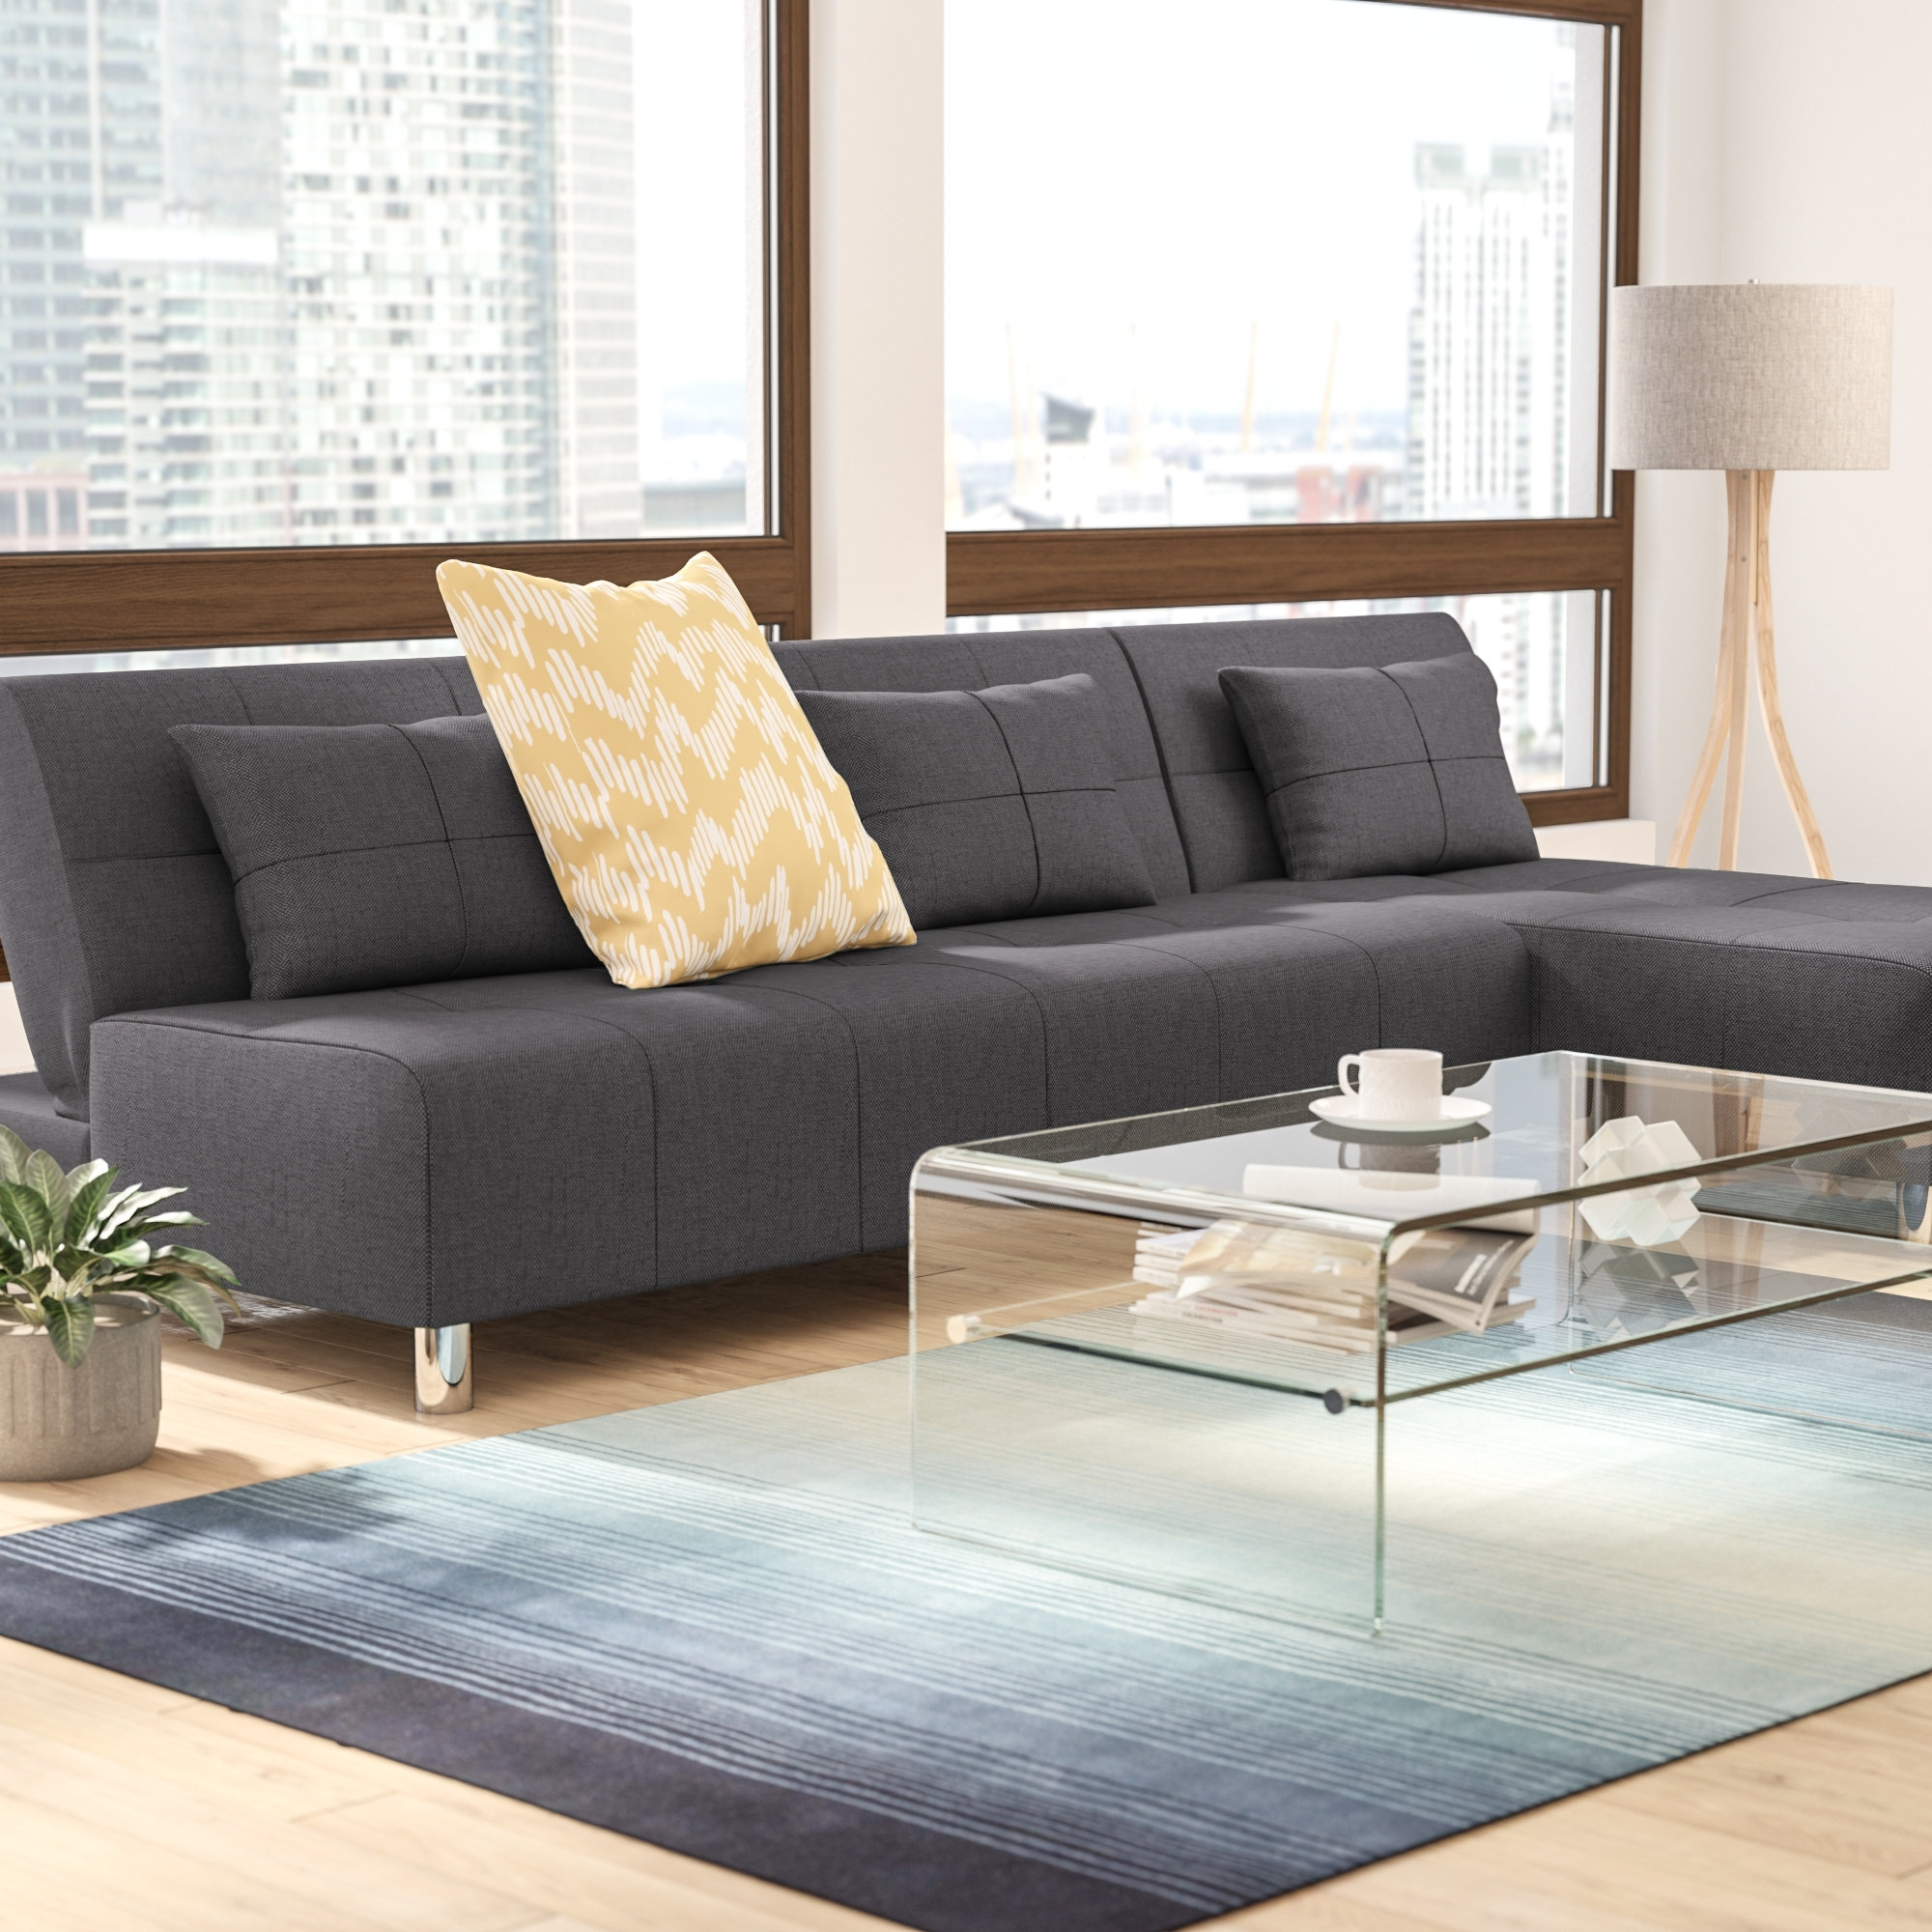 Wade Logan Ricardo Reversible Sleeper Sectional & Reviews | Wayfair Pertaining To Collins Sofa Sectionals With Reversible Chaise (Photo 13 of 30)